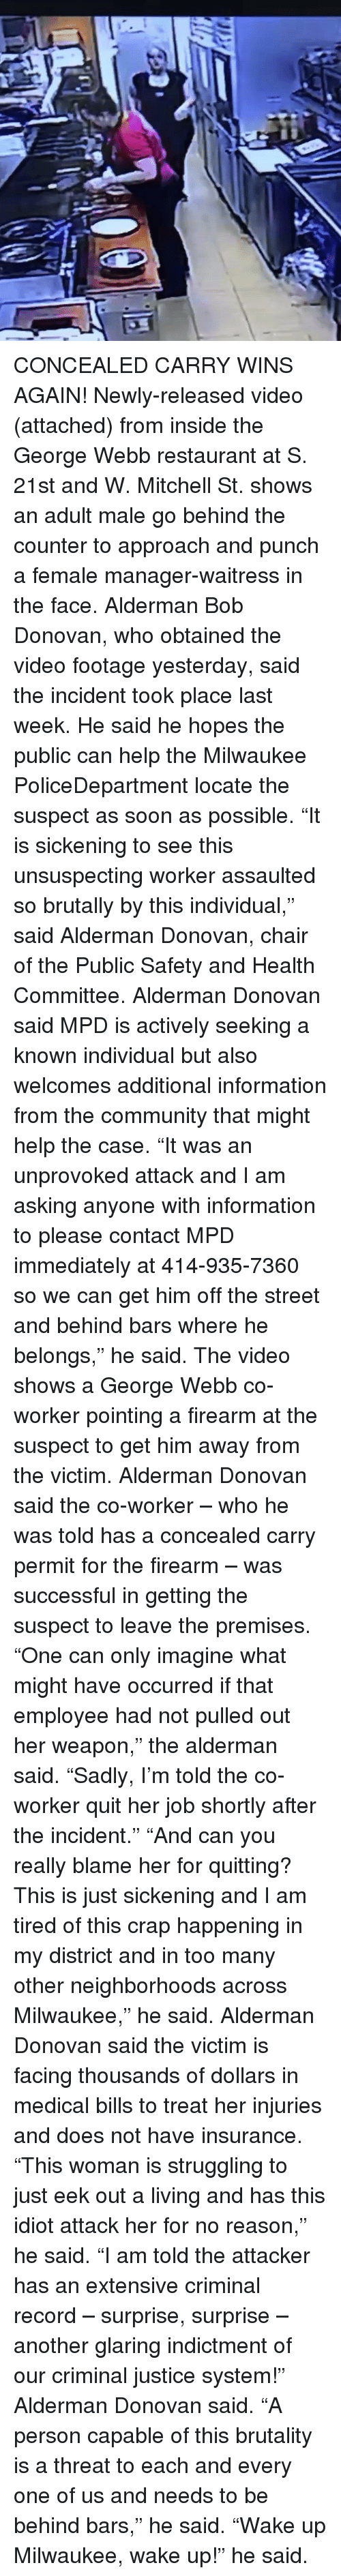 "donovan: CONCEALED CARRY WINS AGAIN! Newly-released video (attached) from inside the George Webb restaurant at S. 21st and W. Mitchell St. shows an adult male go behind the counter to approach and punch a female manager-waitress in the face. Alderman Bob Donovan, who obtained the video footage yesterday, said the incident took place last week. He said he hopes the public can help the Milwaukee PoliceDepartment locate the suspect as soon as possible. ""It is sickening to see this unsuspecting worker assaulted so brutally by this individual,"" said Alderman Donovan, chair of the Public Safety and Health Committee. Alderman Donovan said MPD is actively seeking a known individual but also welcomes additional information from the community that might help the case. ""It was an unprovoked attack and I am asking anyone with information to please contact MPD immediately at 414-935-7360 so we can get him off the street and behind bars where he belongs,"" he said. The video shows a George Webb co-worker pointing a firearm at the suspect to get him away from the victim. Alderman Donovan said the co-worker – who he was told has a concealed carry permit for the firearm – was successful in getting the suspect to leave the premises. ""One can only imagine what might have occurred if that employee had not pulled out her weapon,"" the alderman said. ""Sadly, I'm told the co-worker quit her job shortly after the incident."" ""And can you really blame her for quitting? This is just sickening and I am tired of this crap happening in my district and in too many other neighborhoods across Milwaukee,"" he said. Alderman Donovan said the victim is facing thousands of dollars in medical bills to treat her injuries and does not have insurance. ""This woman is struggling to just eek out a living and has this idiot attack her for no reason,"" he said. ""I am told the attacker has an extensive criminal record – surprise, surprise – another glaring indictment of our criminal justice system!"" Alderman Donovan said. ""A person capable of this brutality is a threat to each and every one of us and needs to be behind bars,"" he said. ""Wake up Milwaukee, wake up!"" he said."